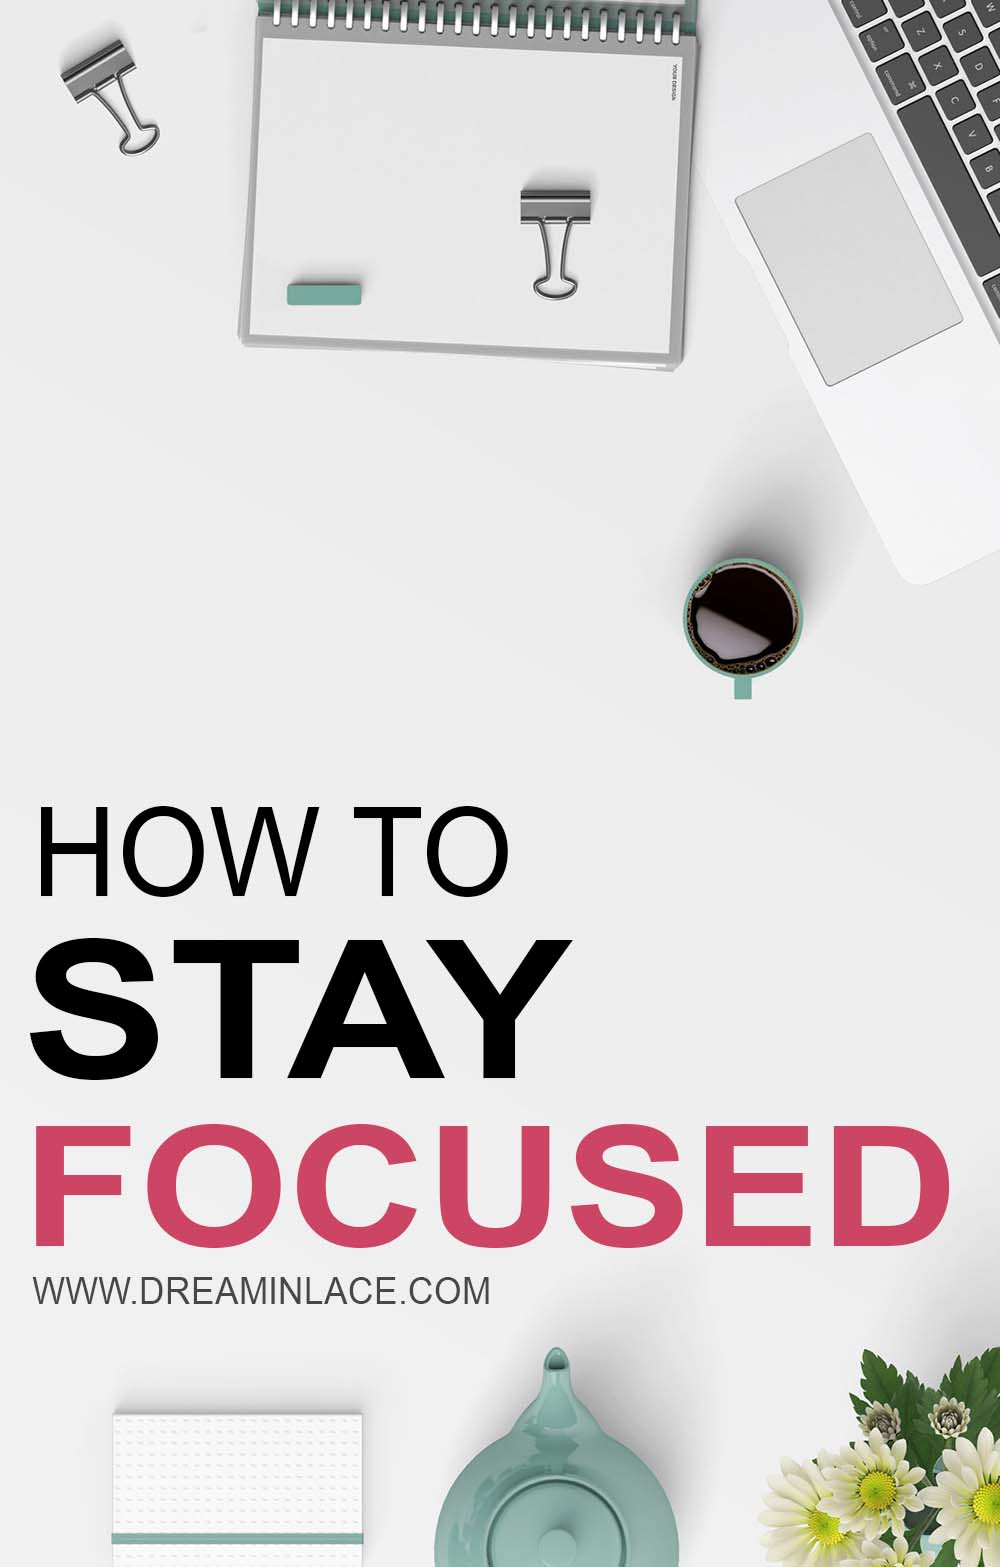 How to Stay Focused I Dreaminlace.com #careertips #timemanagement